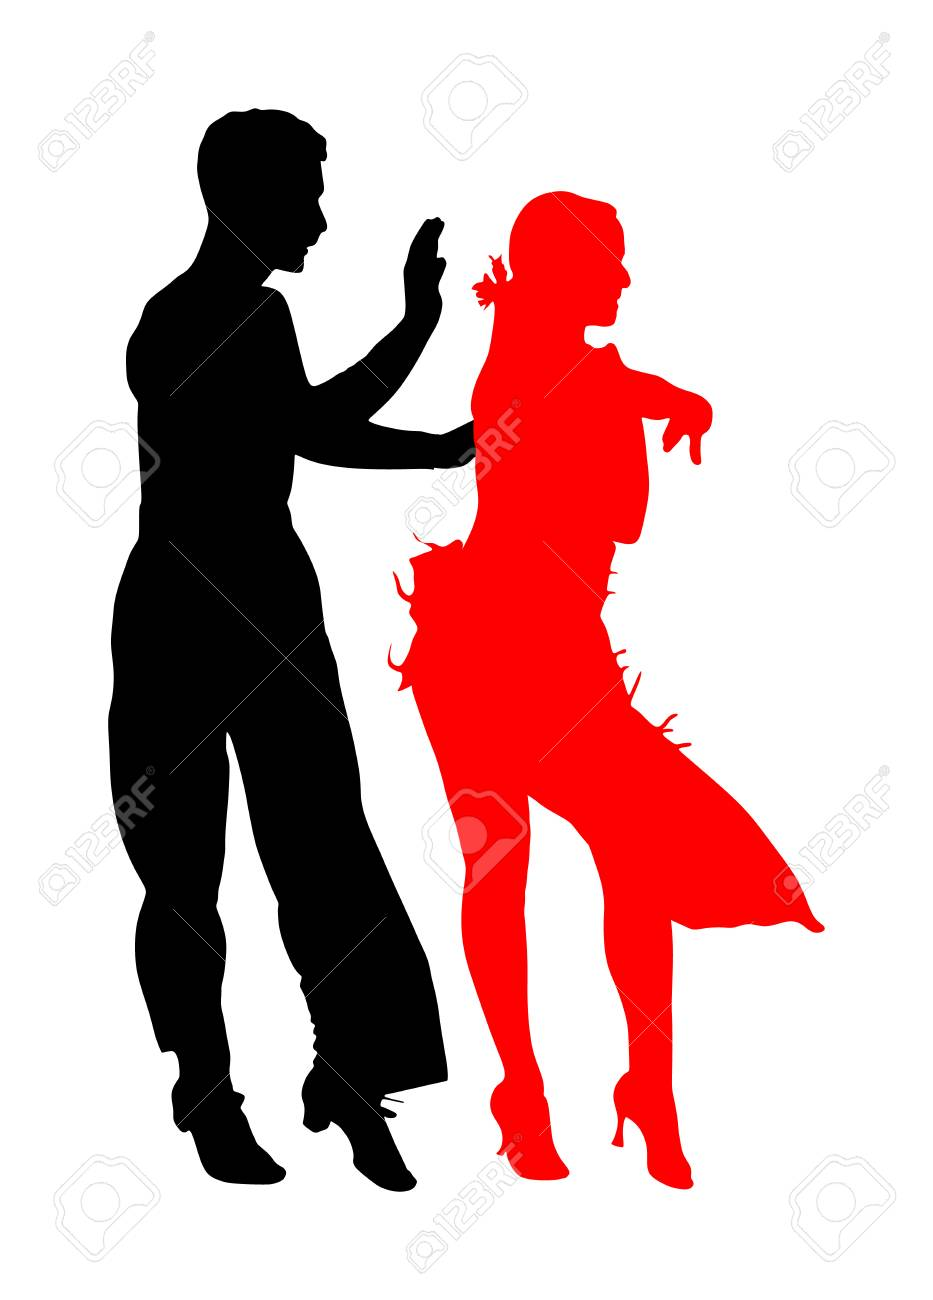 Elegance Tango Latino Dancers Vector Silhouette Isolated On White Royalty Free Cliparts Vectors And Stock Illustration Image 119486008